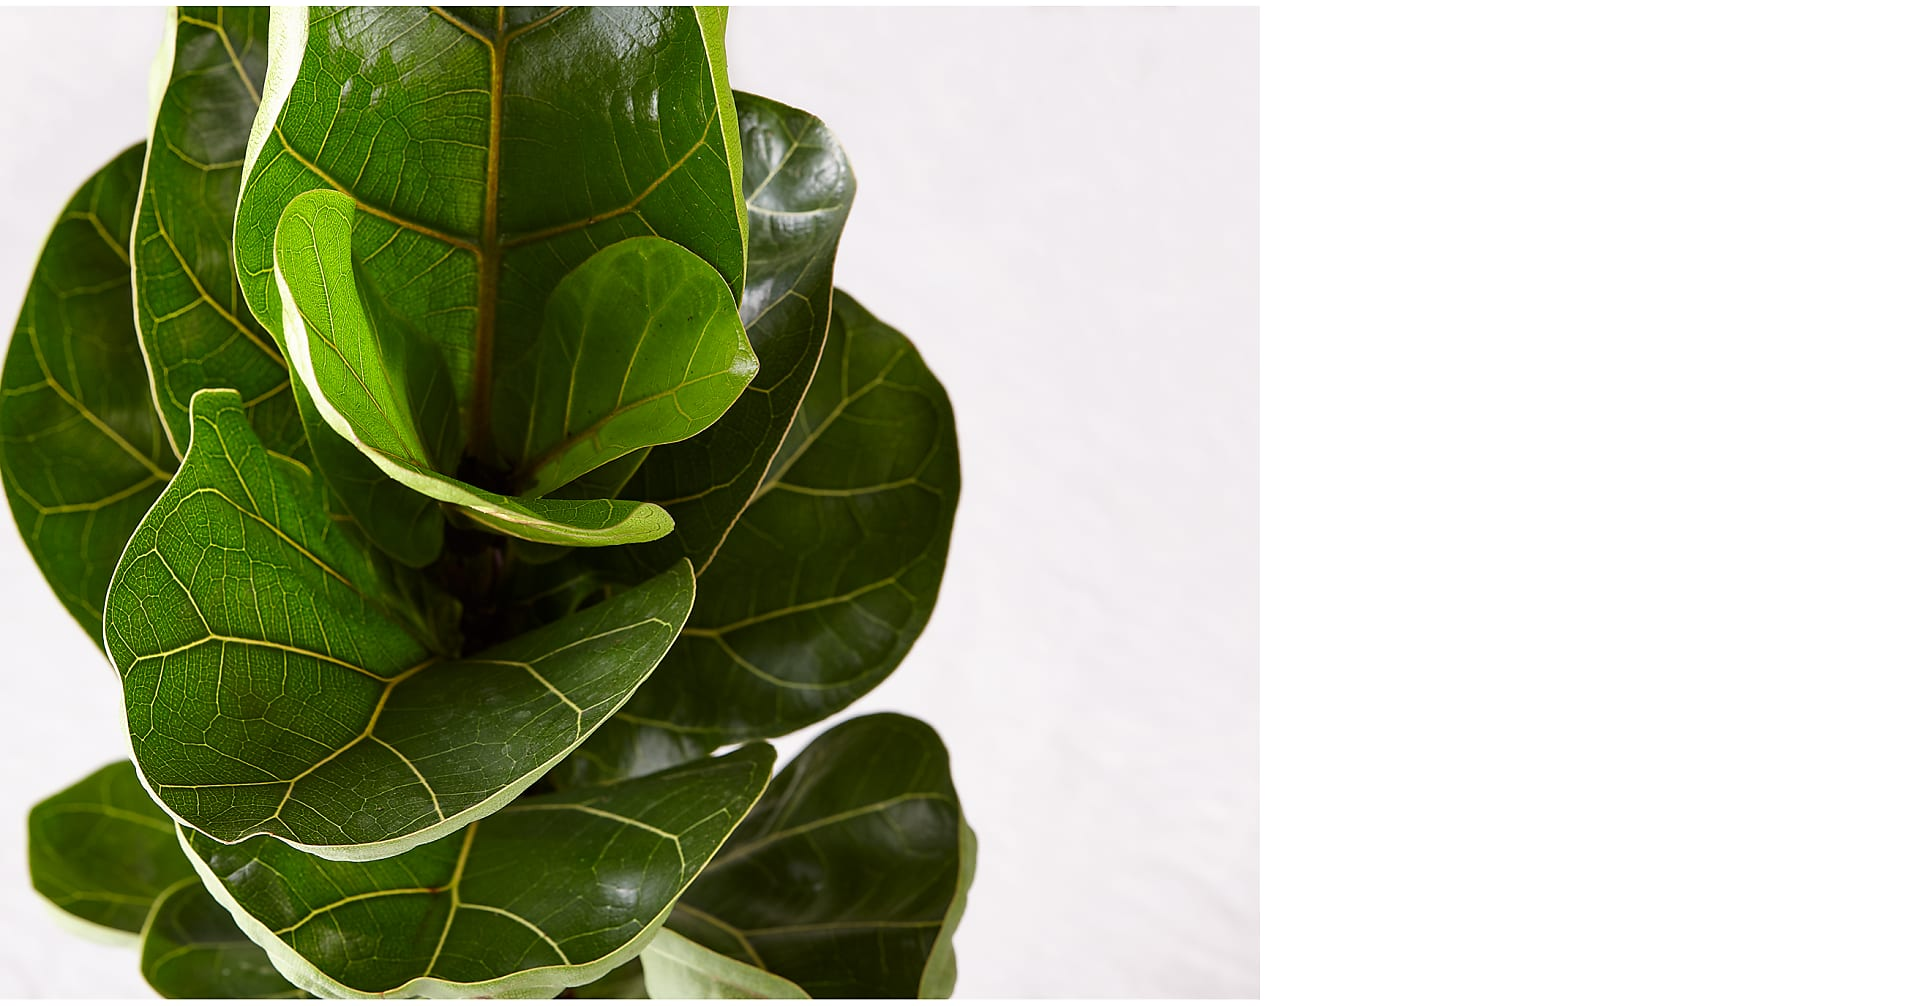 Fiddle Leaf Fig Plant - Image 2 Of 2